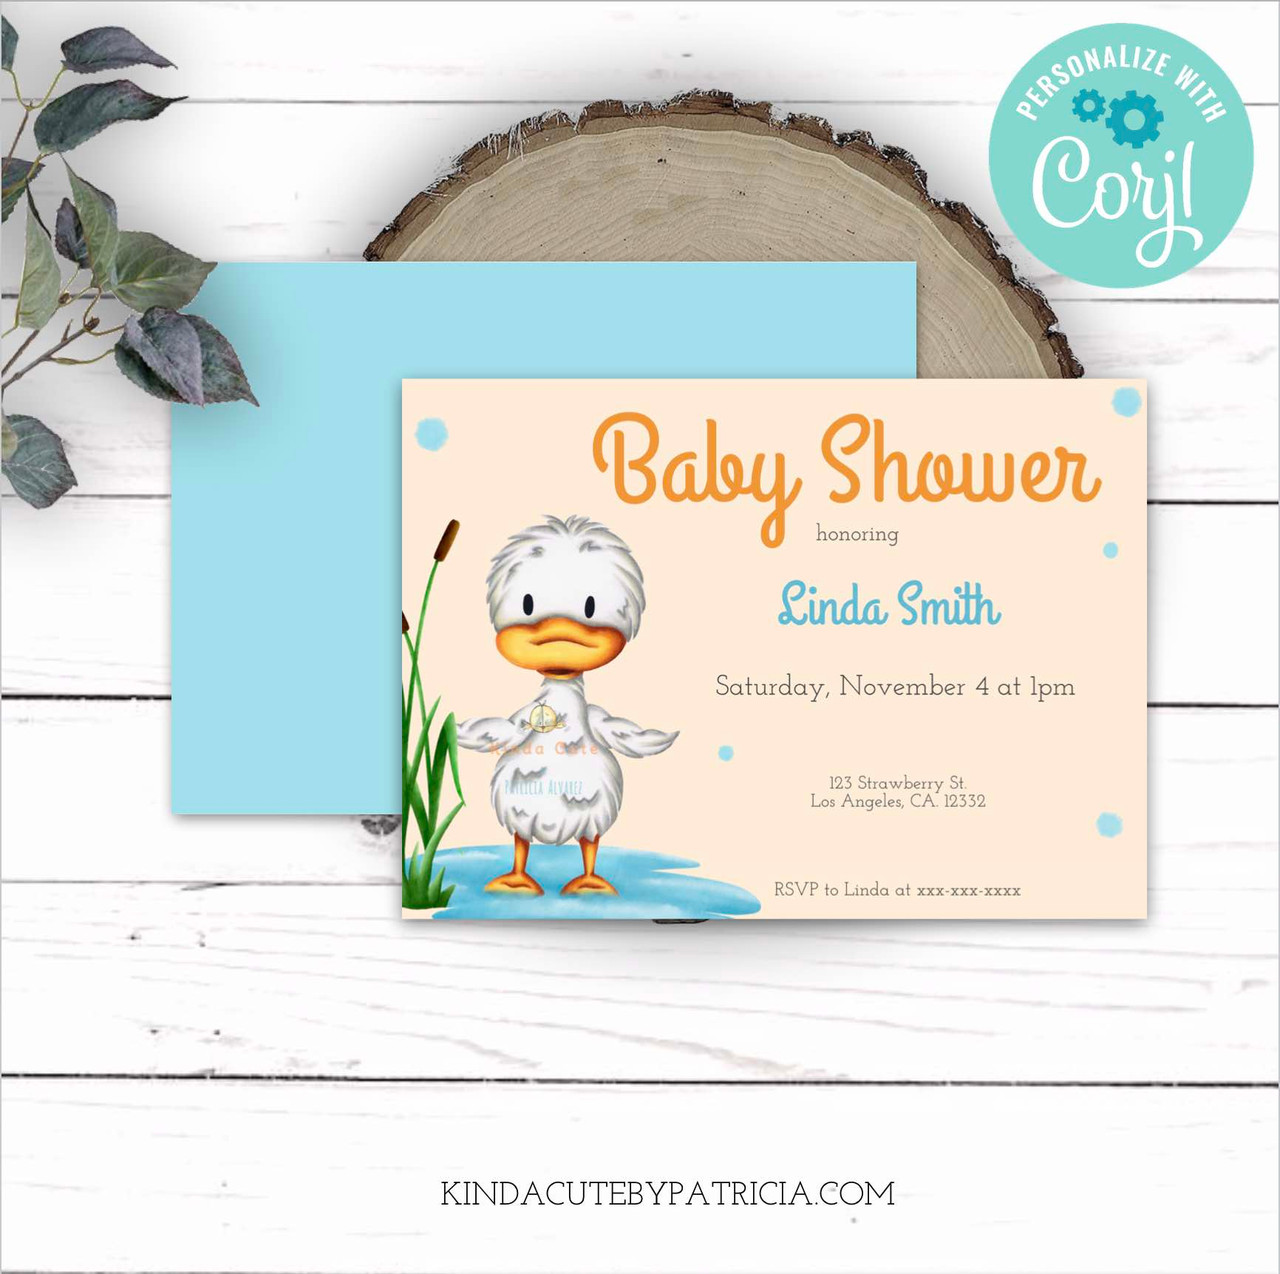 Cute Sweet Adorable Duck Baby Duckling Stock Vector (Royalty Free ... | 1274x1280